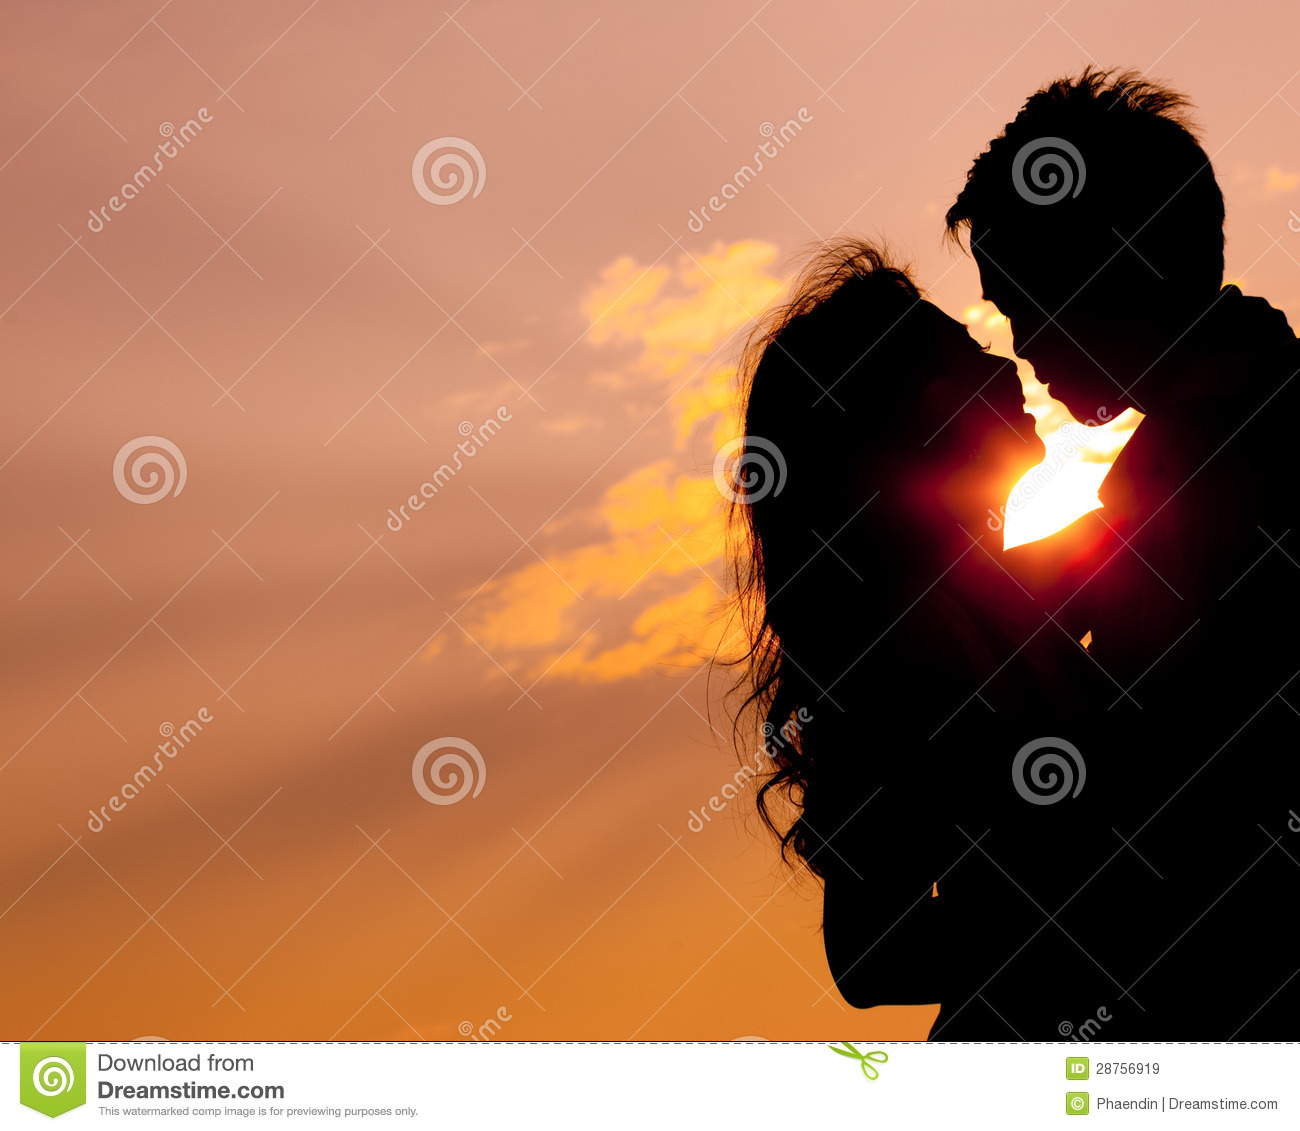 Romantic lovers hugging at twlilight with sunset in background.